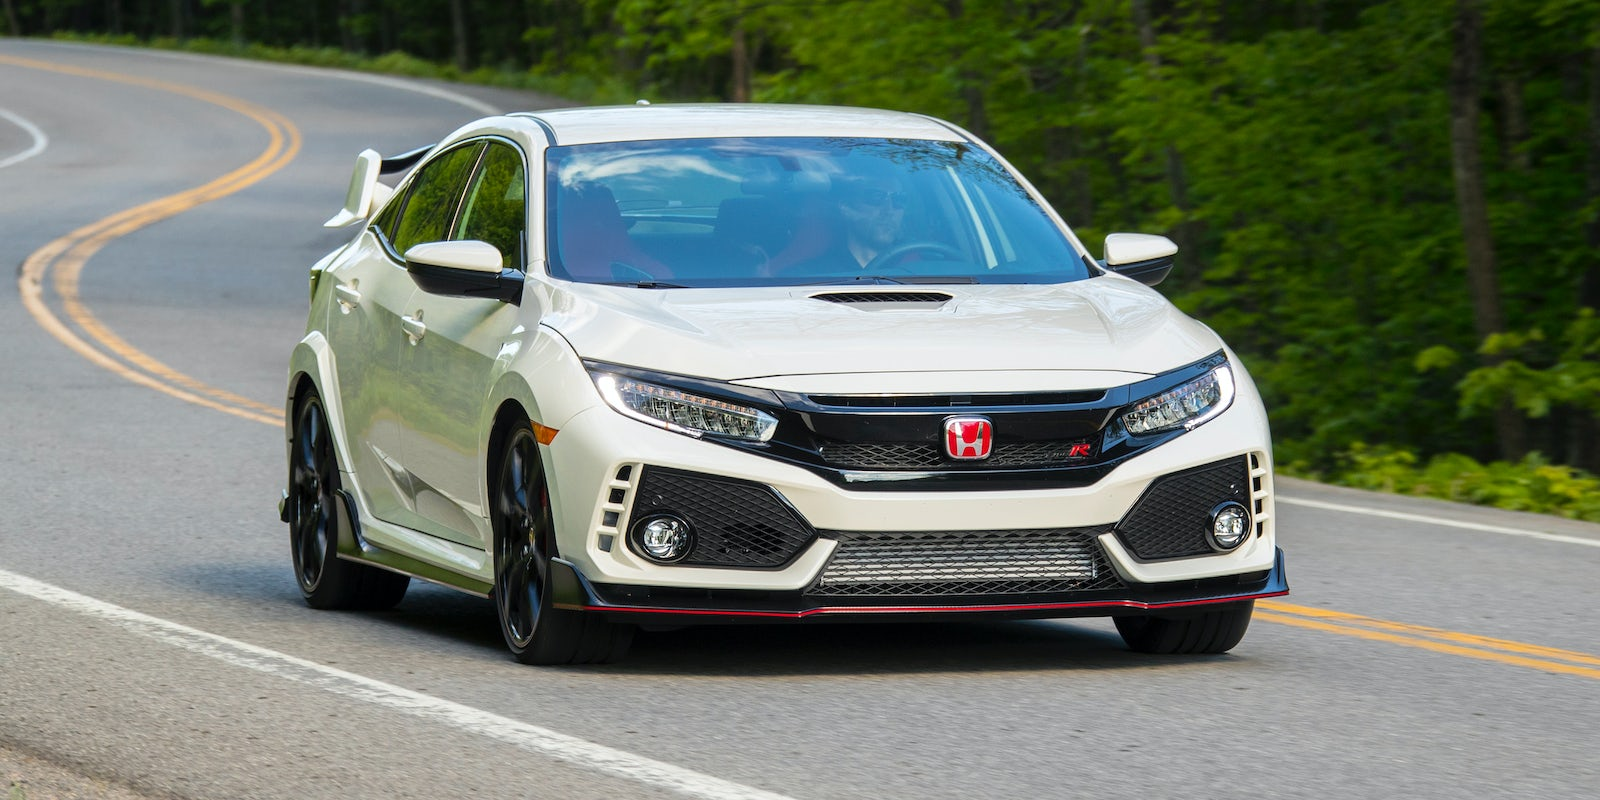 honda civic type r 2017 review carwow. Black Bedroom Furniture Sets. Home Design Ideas